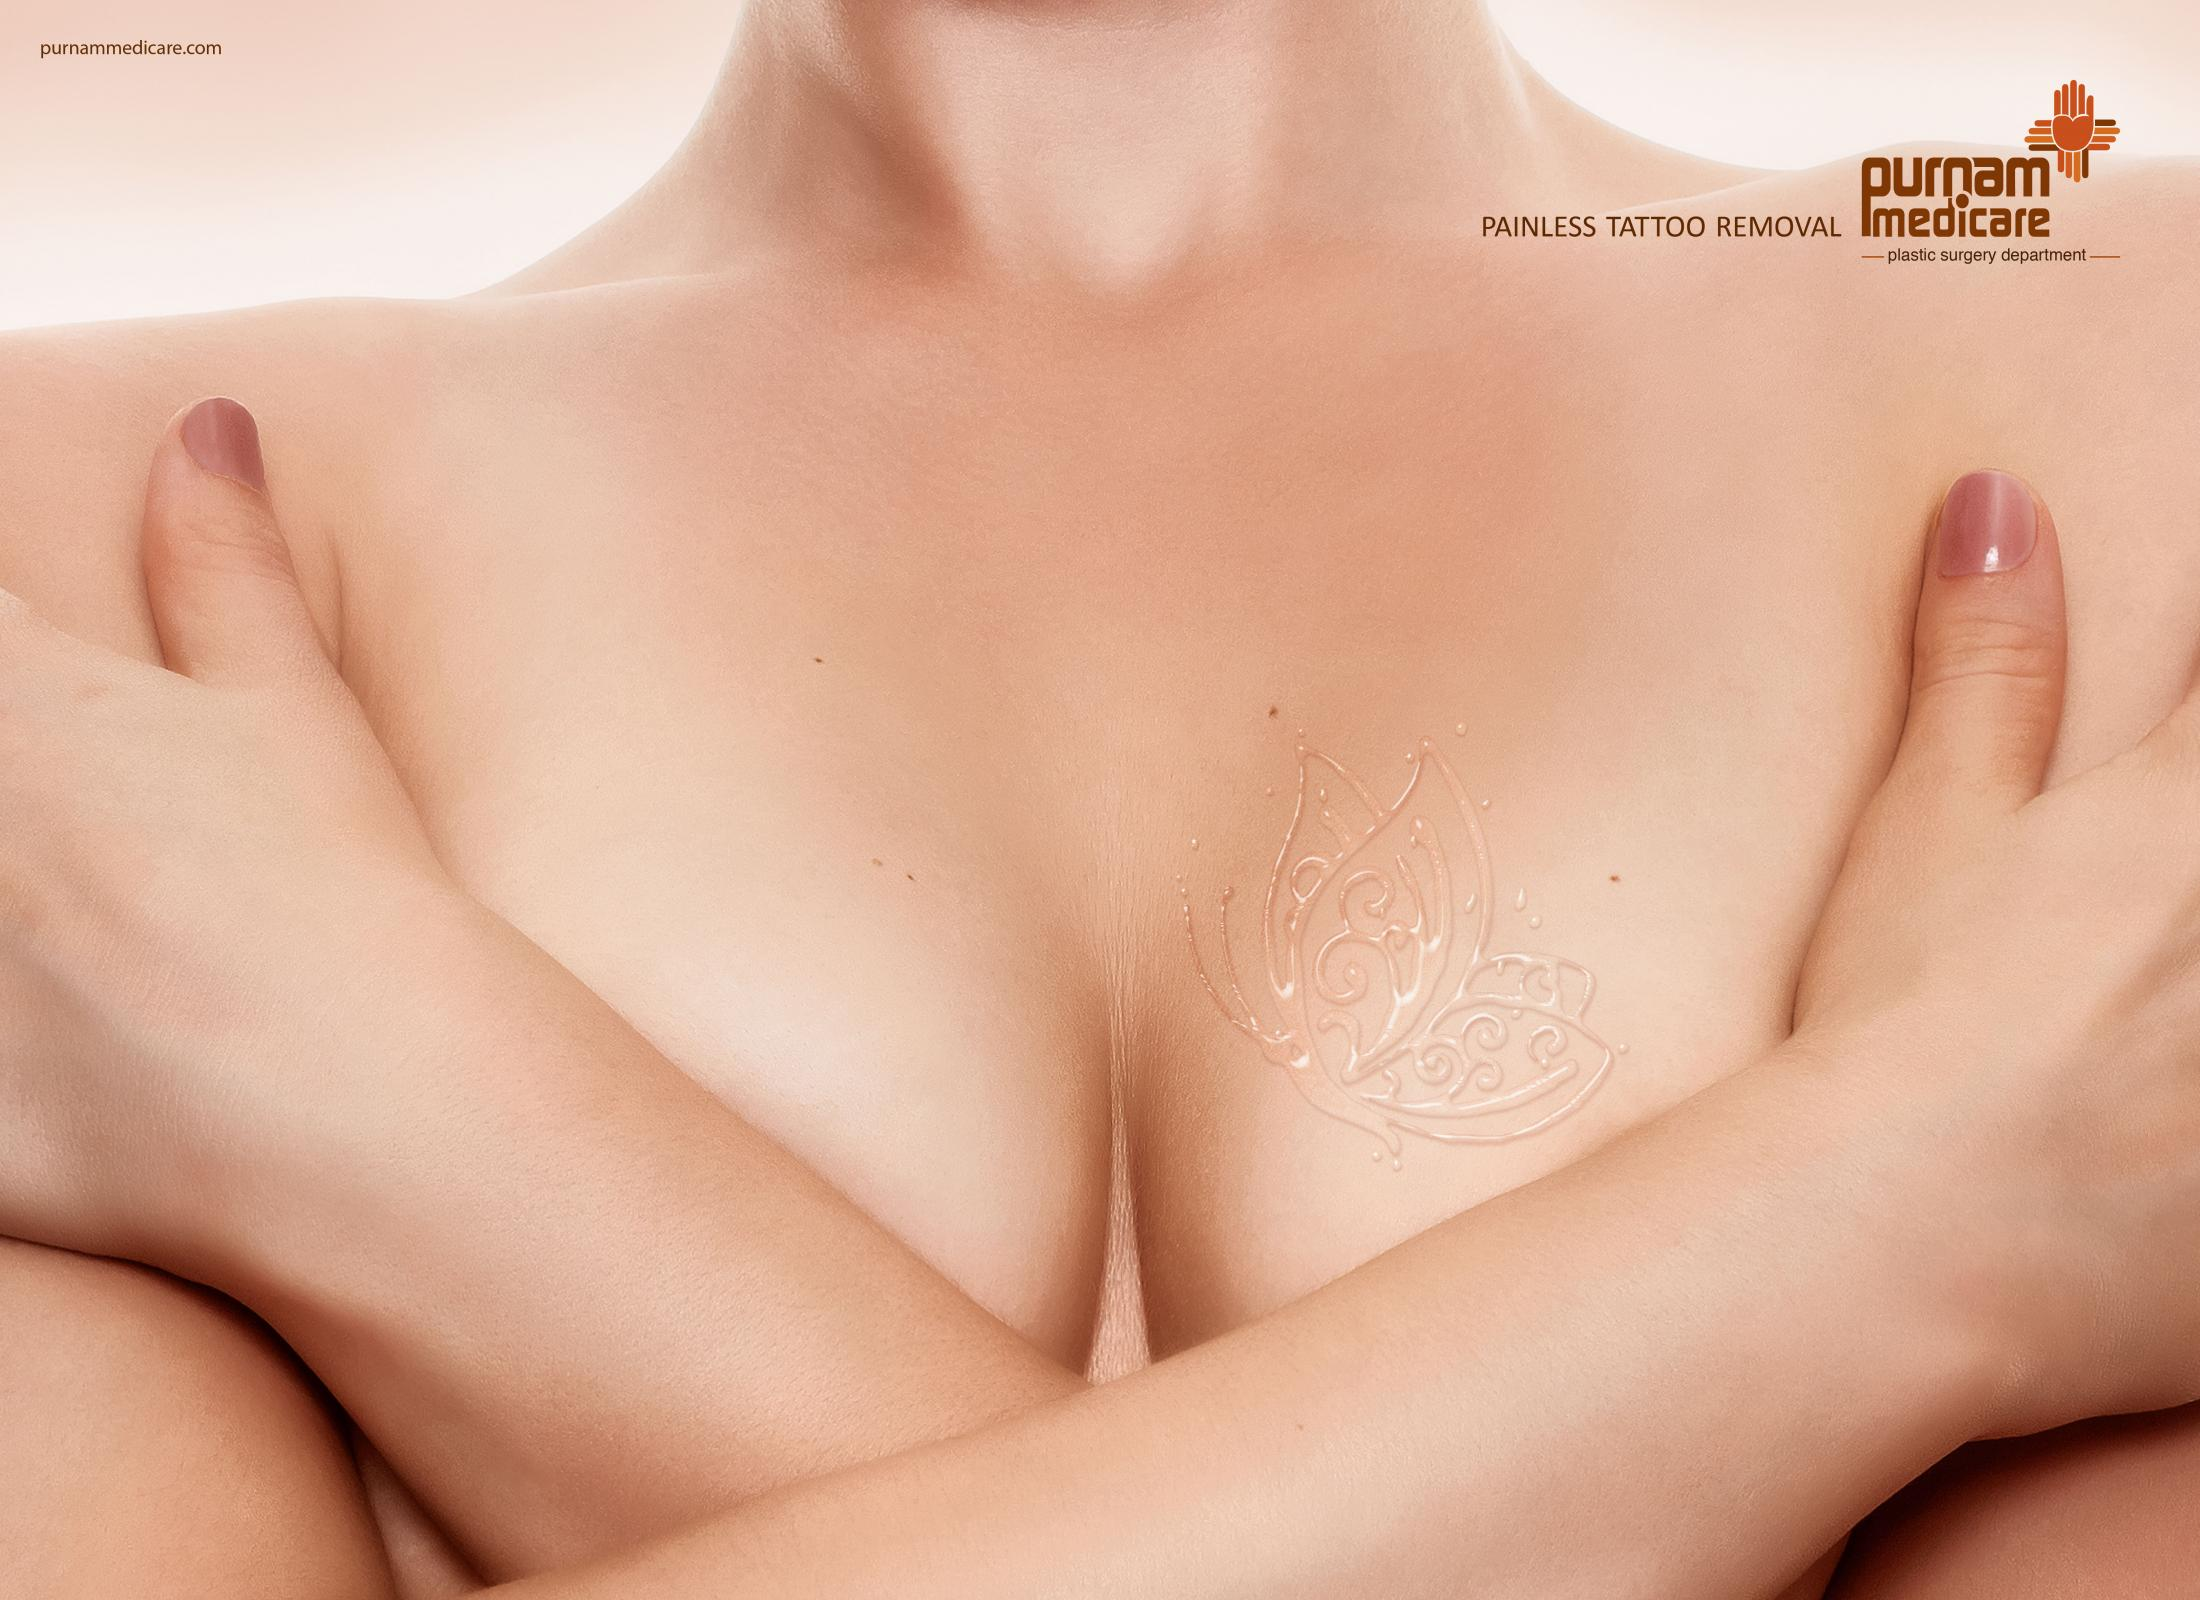 Purnam Medicare Print Ad - Tattoo - Butterfly